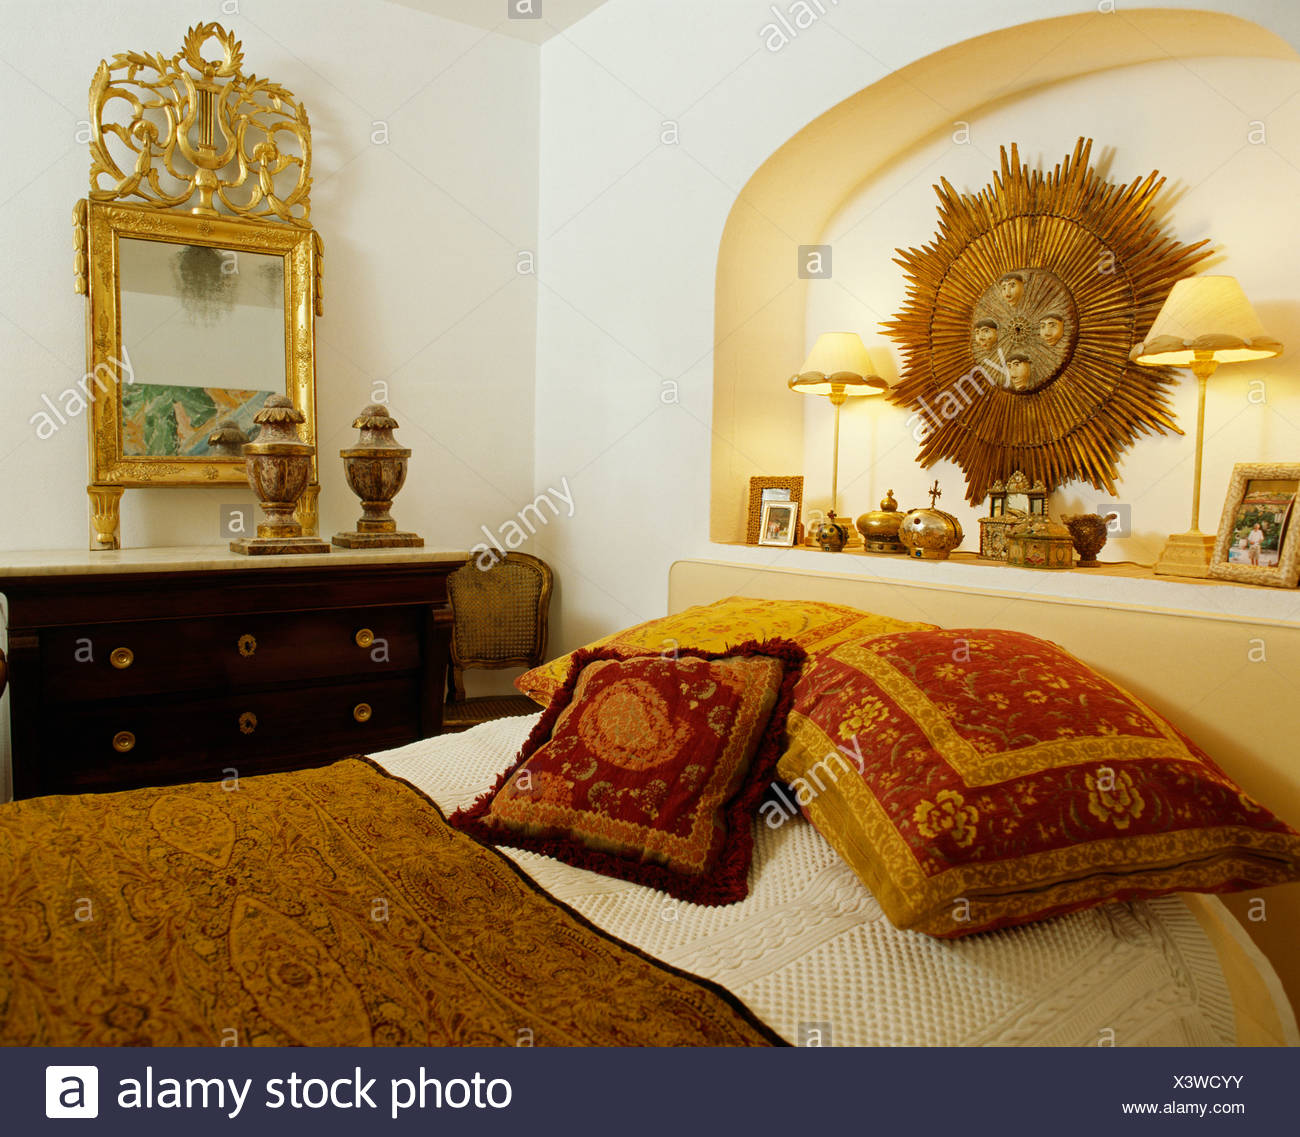 Antique Gold Sunburst In Alcove Above Bed With Tapestry Cushions In